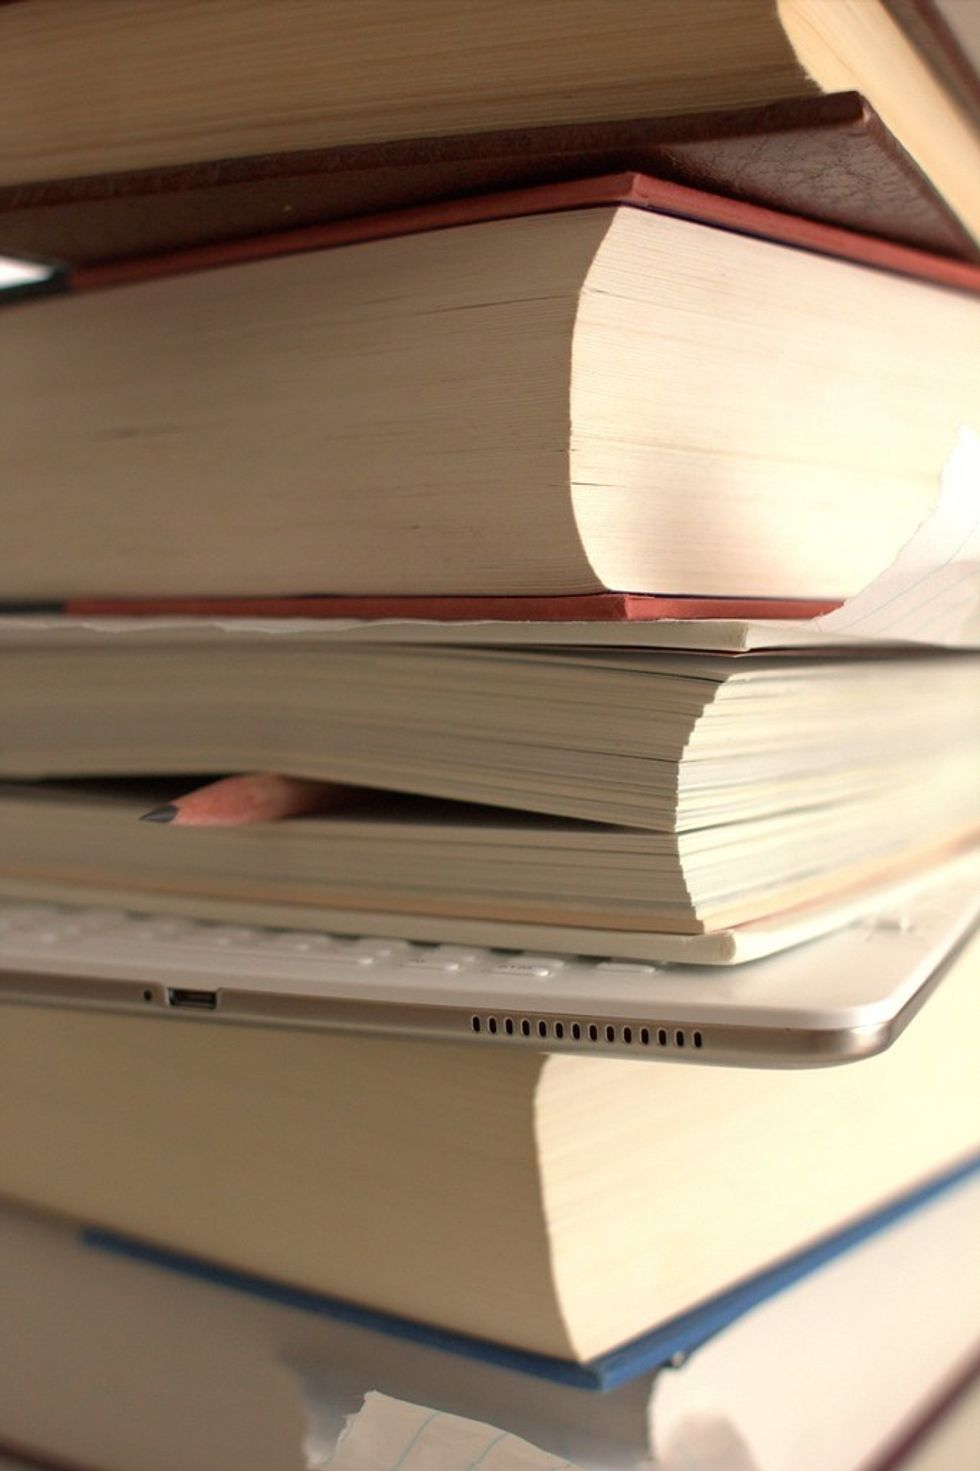 Are Academic Papers Worthless?